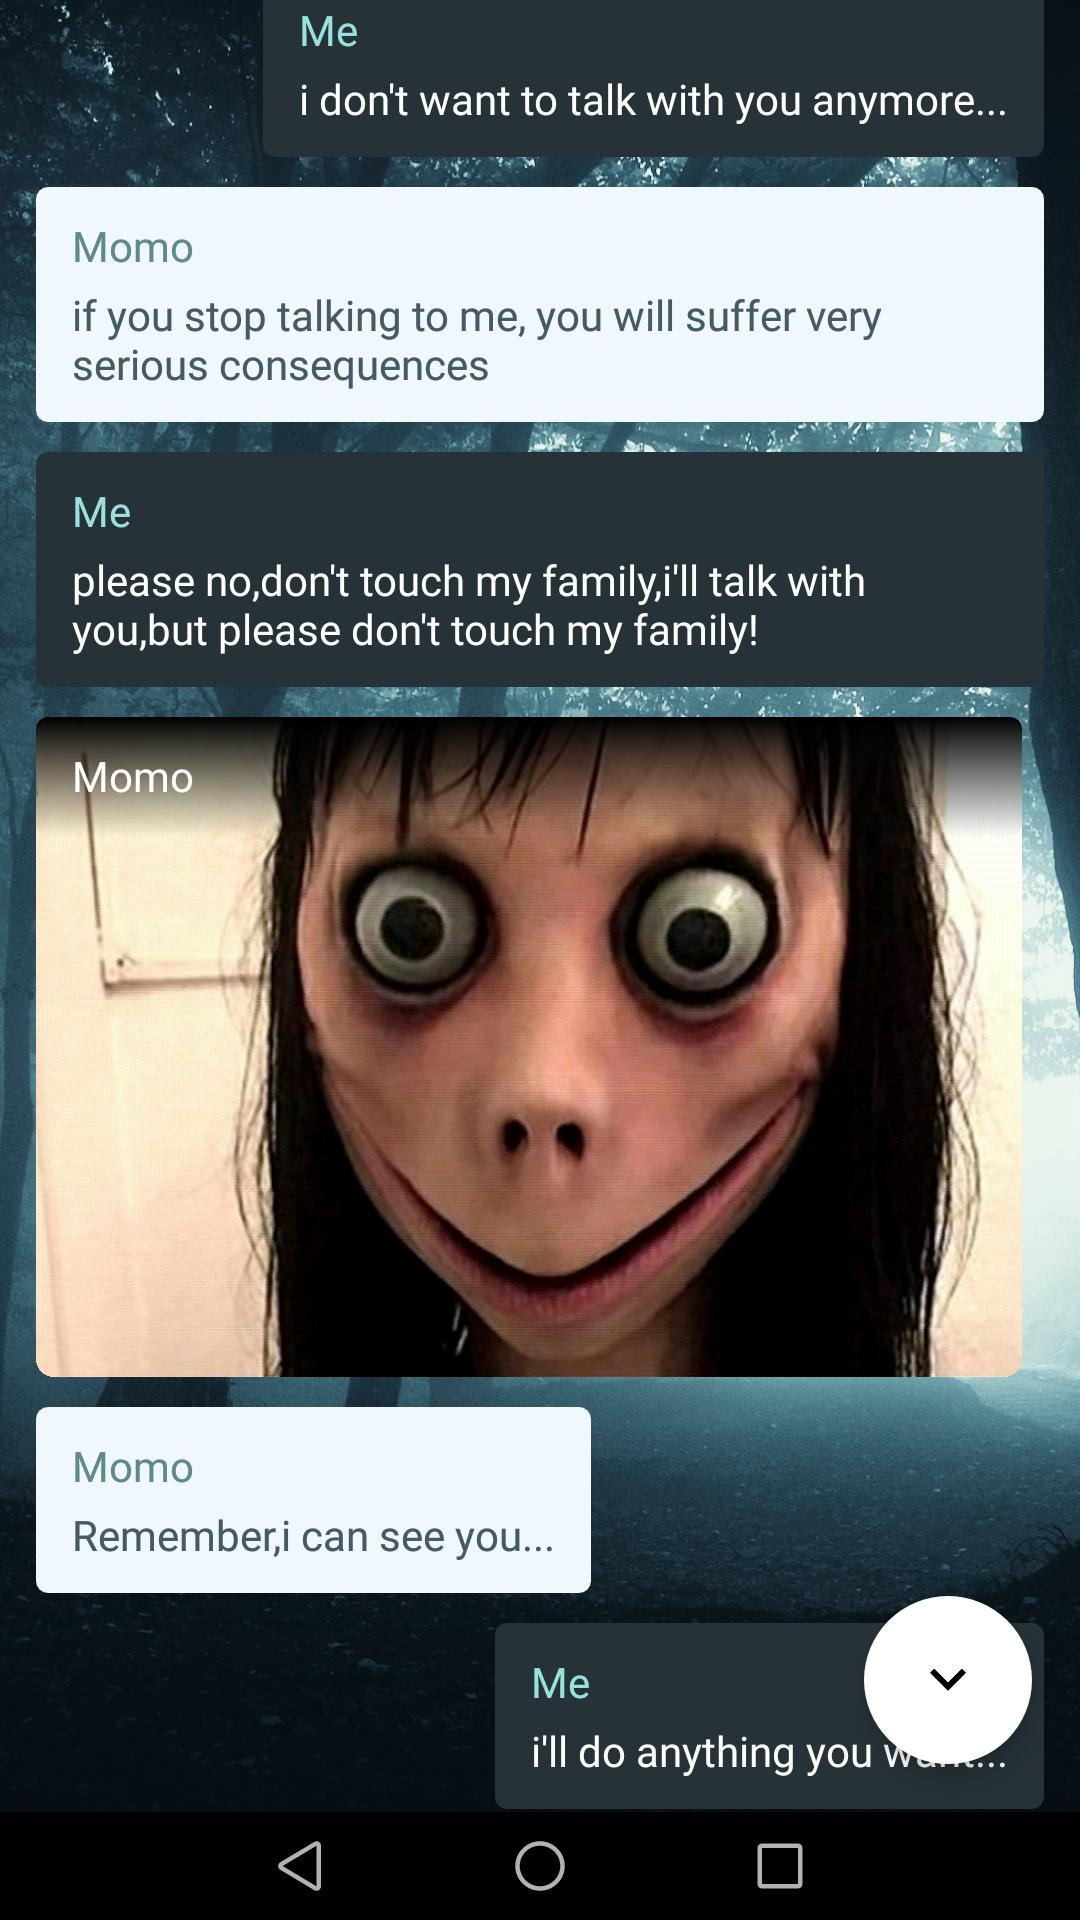 MOMO HORROR CHAT for Android - APK Download